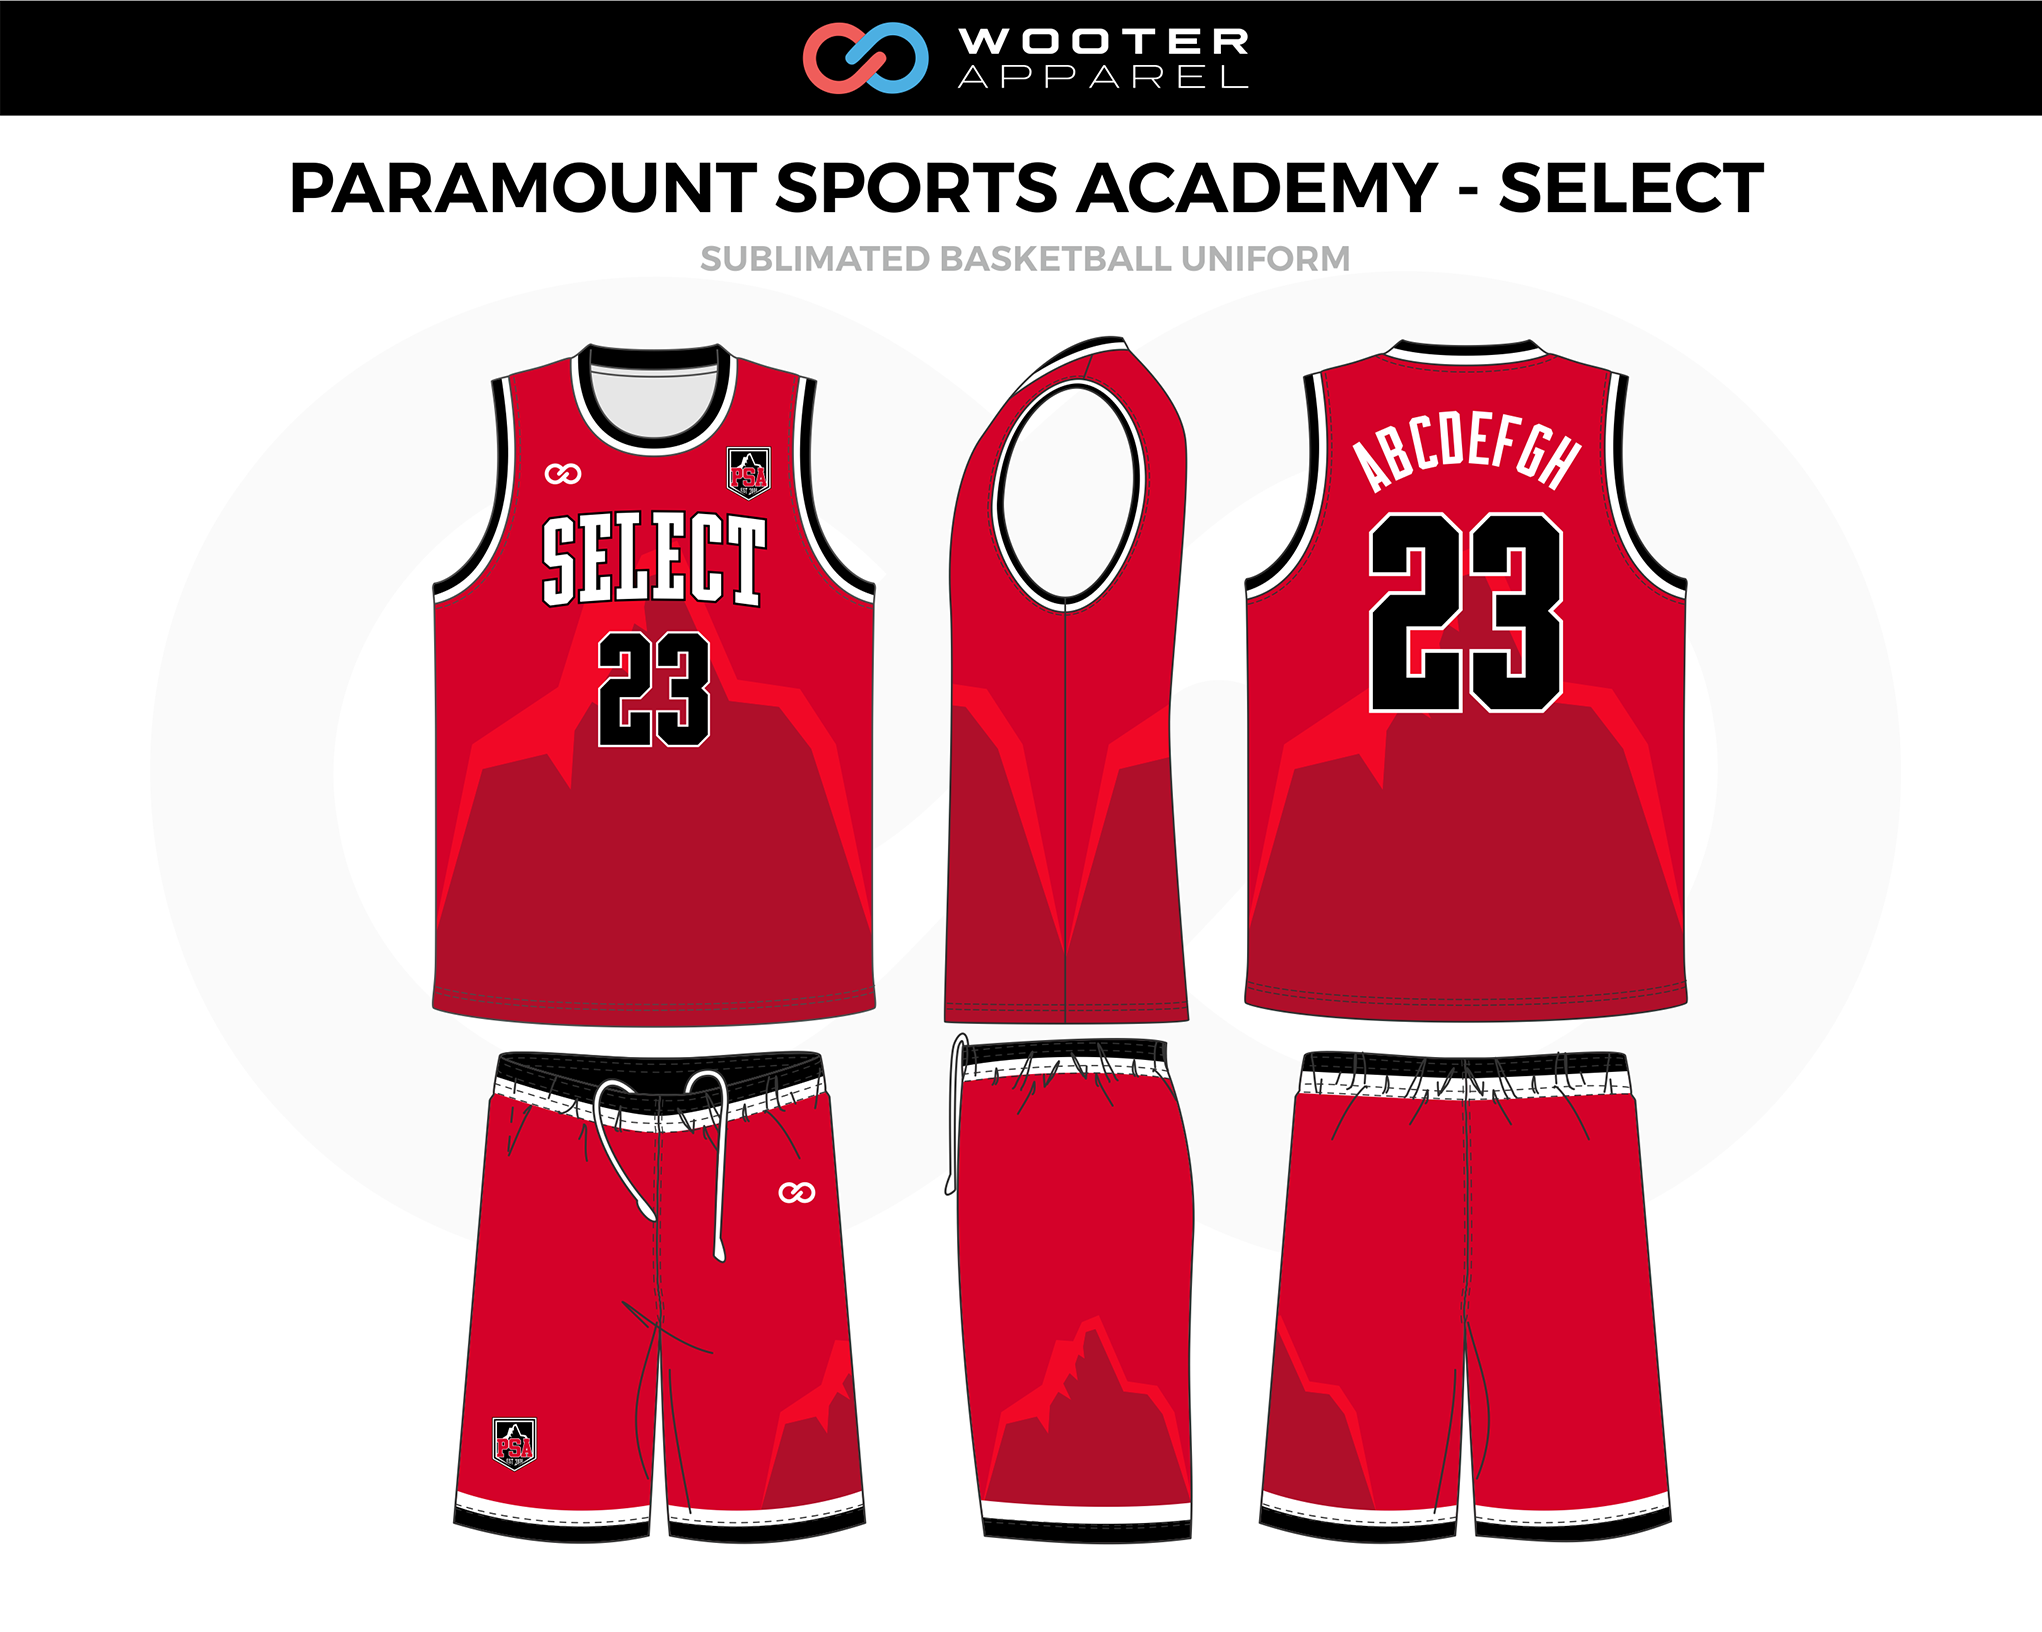 PARAMOUNT SPORTS ACADEMY-SELECT Red Black White Basketball Uniform, Jersey and Shorts